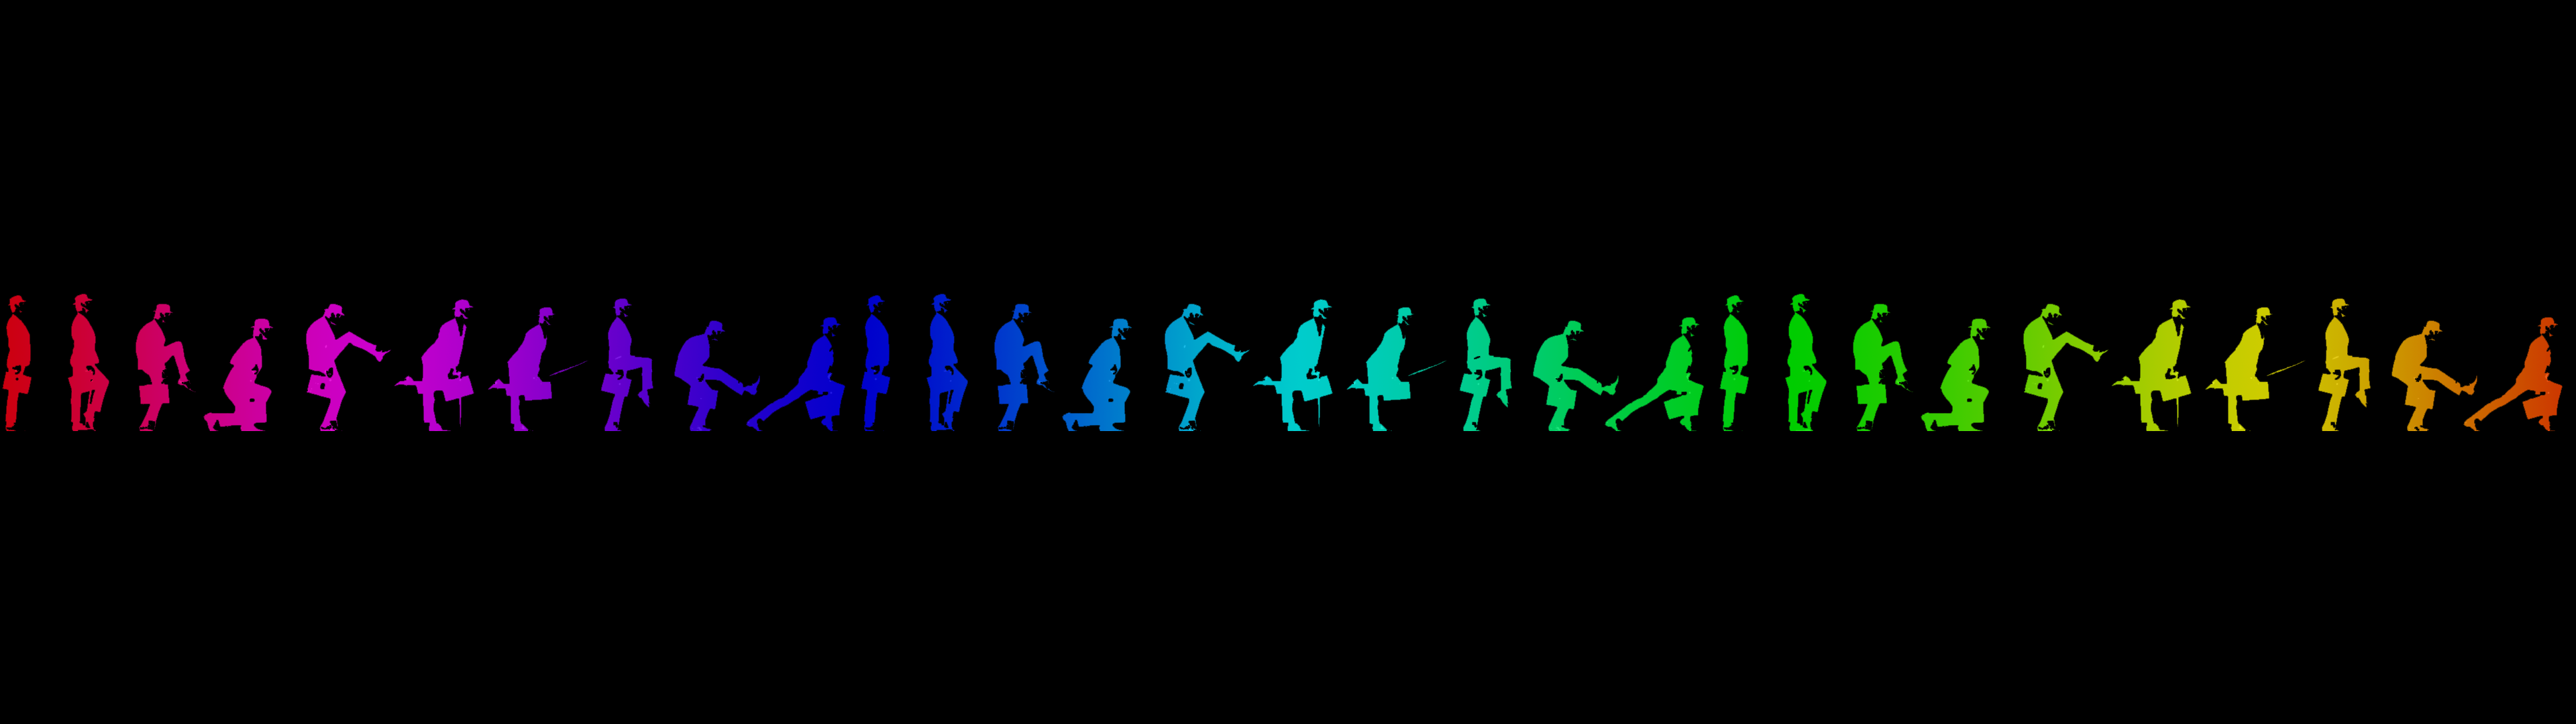 Ministry of Silly Walks Dual screen by TomThaiTom 3840x1080